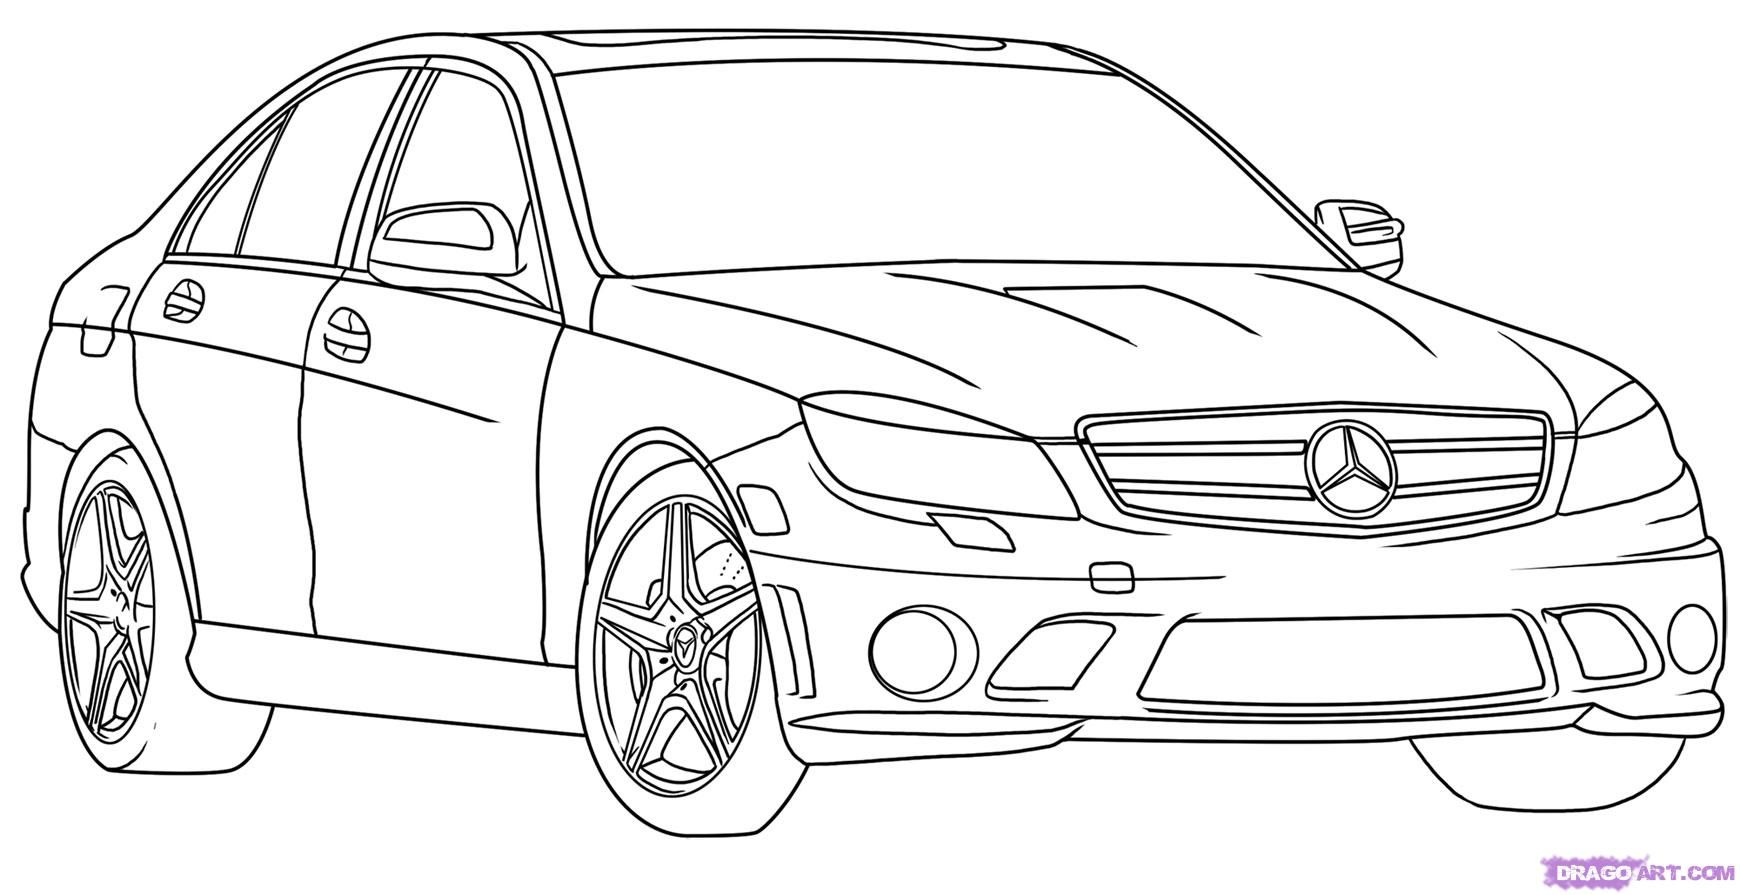 How to draw the Mercedes-Benz car step by step